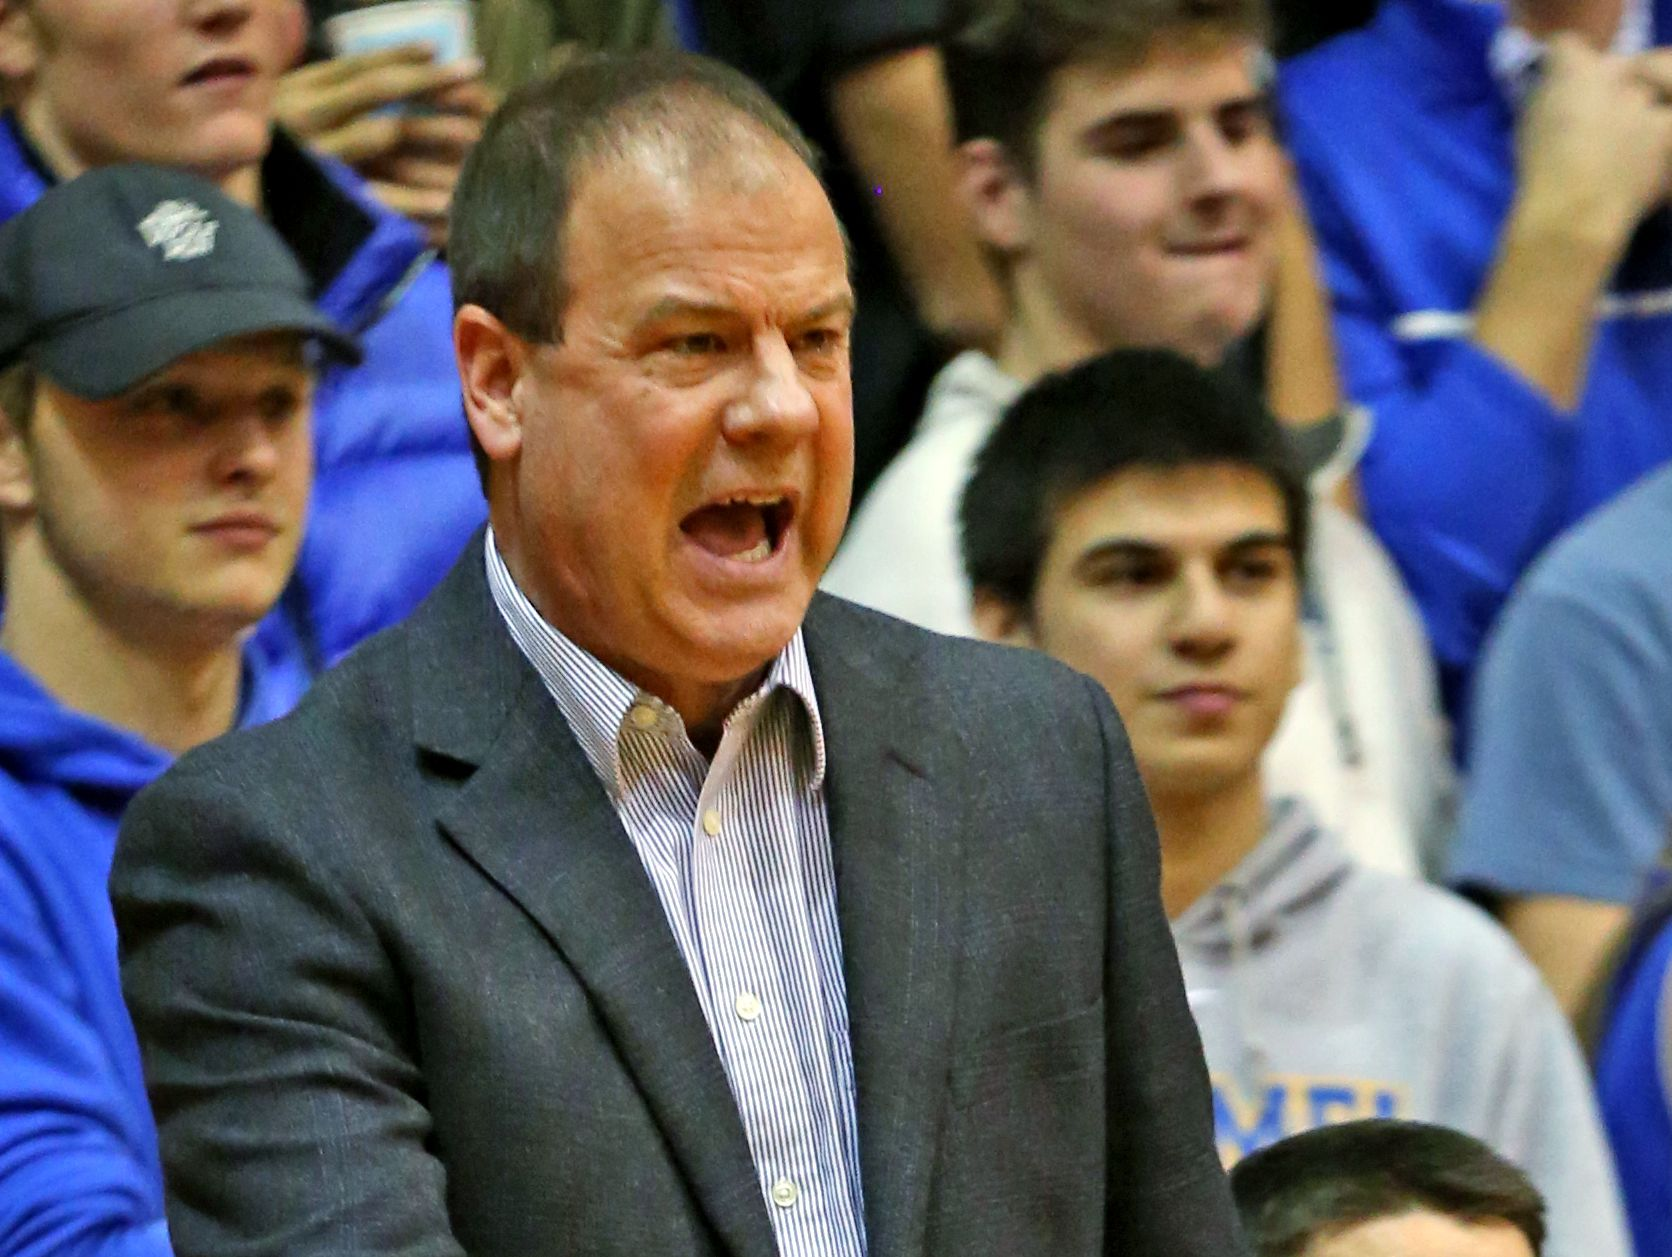 Carmel Coach Scott Heady yells to his team during first half action of the Carmel at North Central High School boys basketball game, Friday, December 16, 2016.